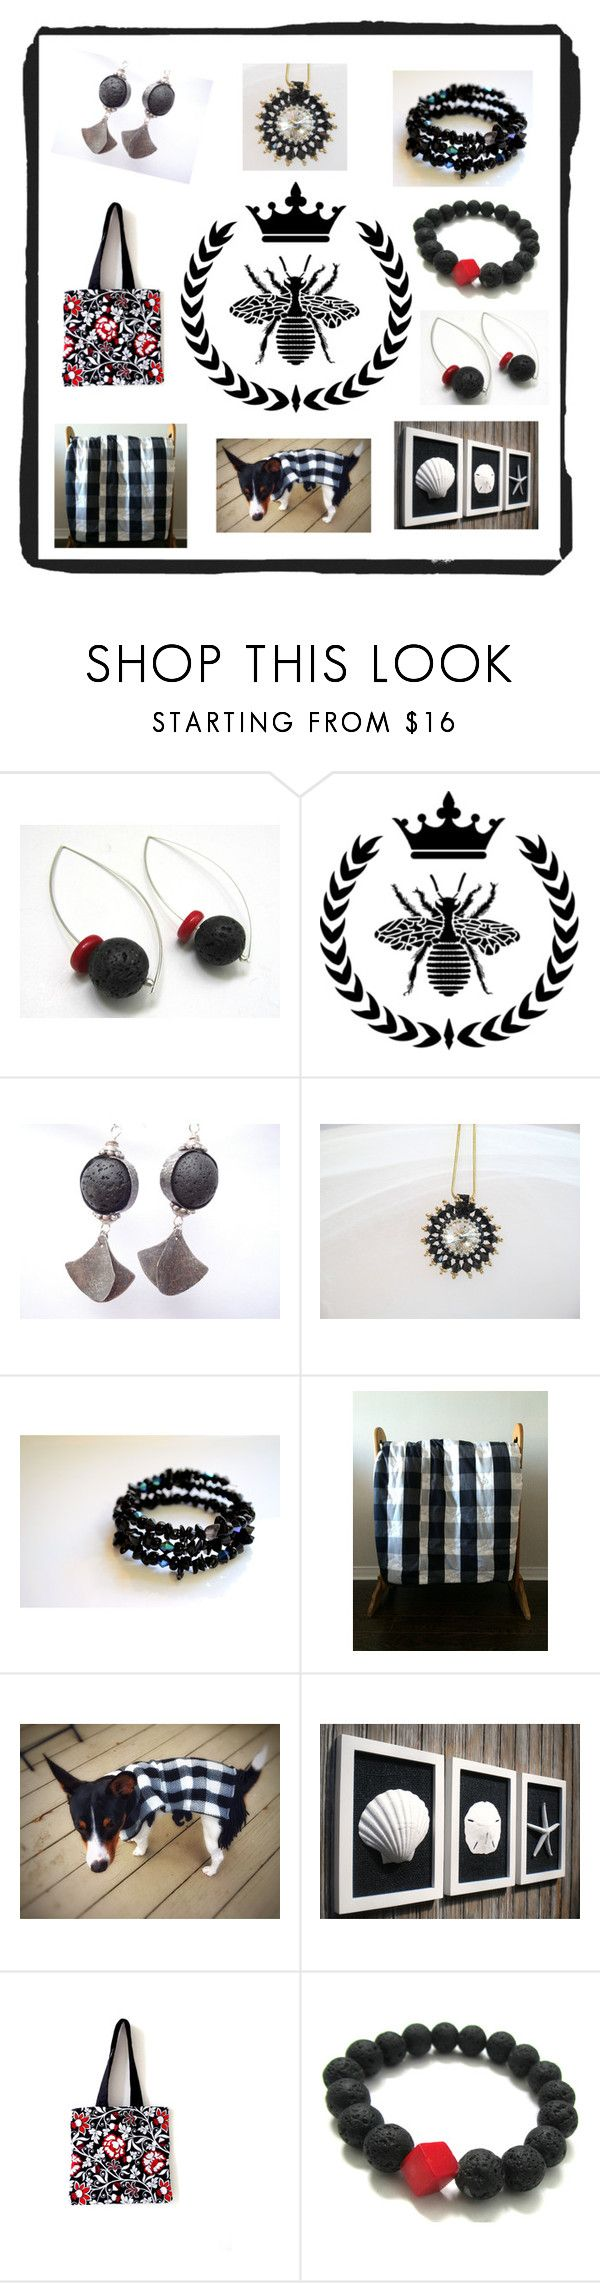 Queen Bee's Picks by fivefoot1designs on Polyvore featuring Queen Bee, Rustico, Tela Beauty Organics, etsy, polyvoreshopping and ETSYShopping